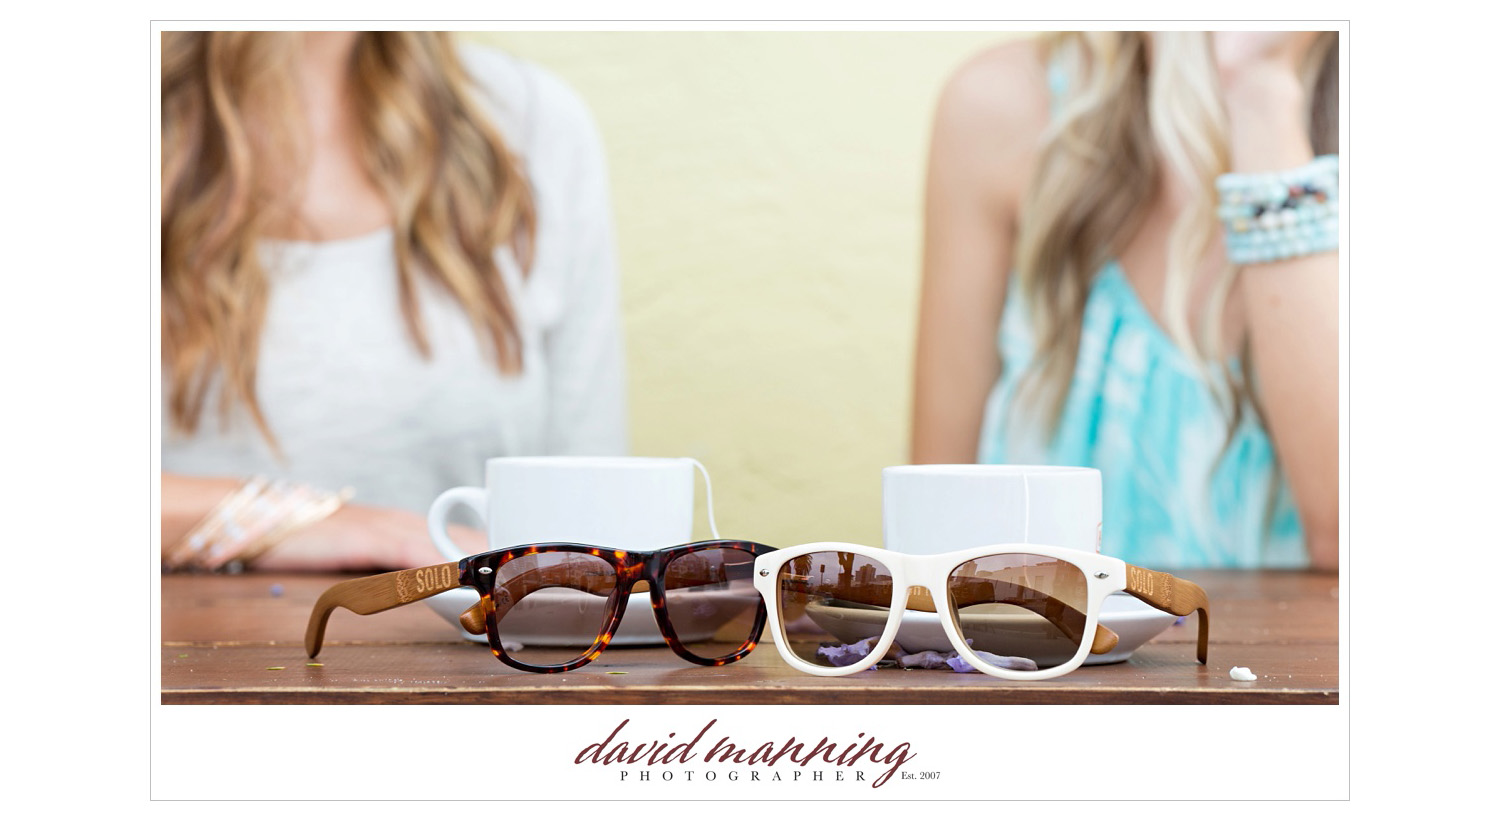 SOLO-Eyewear--Commercial-Editorial-Photos-David-Manning-Photographers-0006.jpg